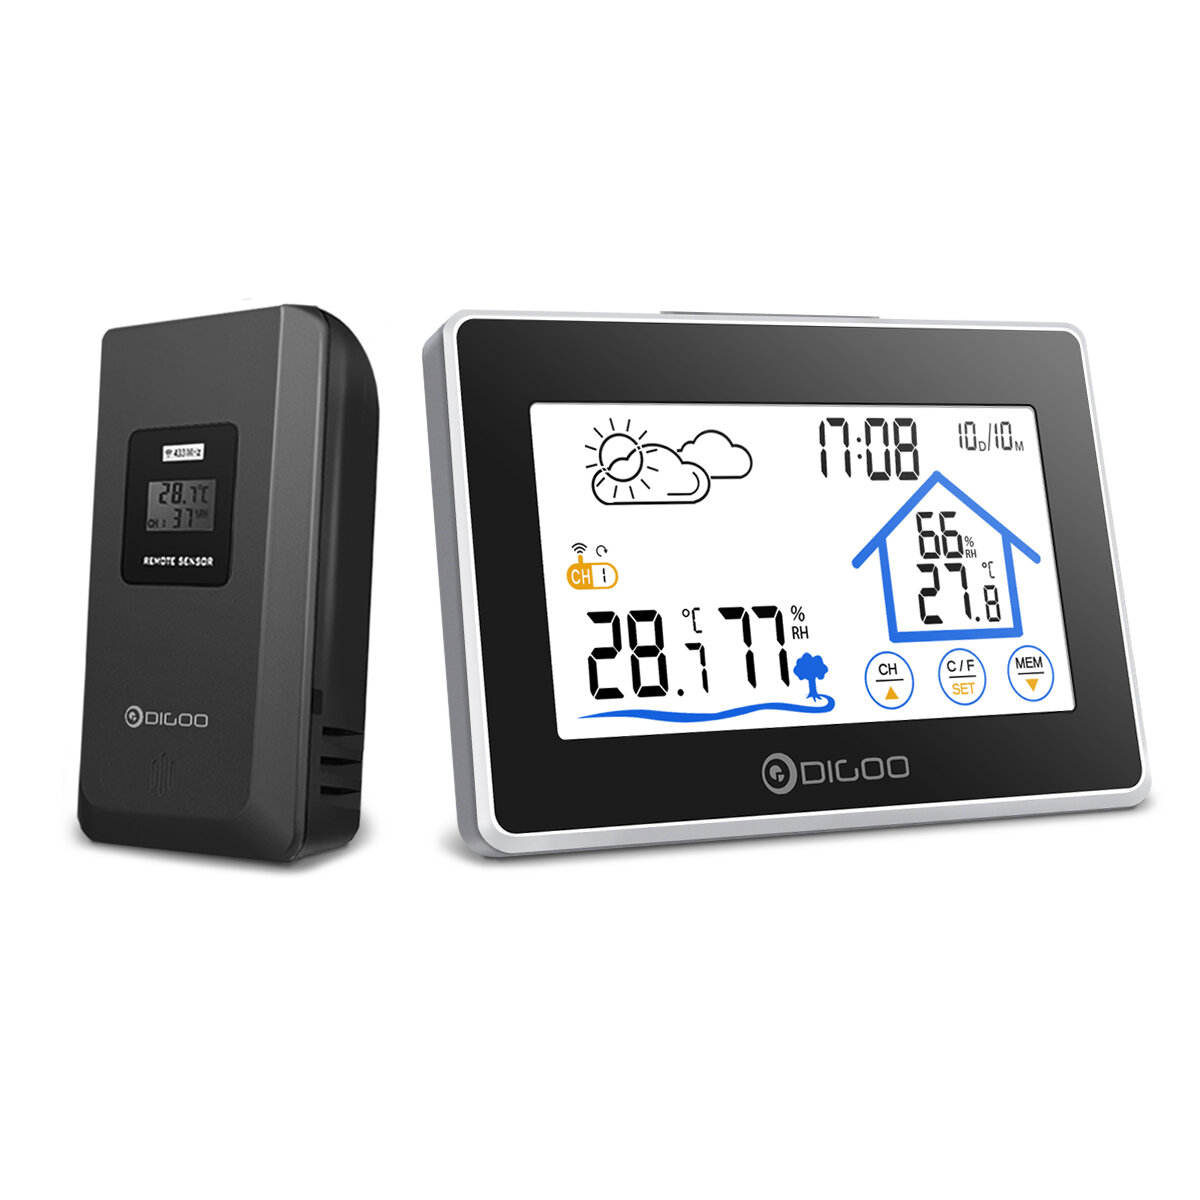 Digoo DG_TH8380 Wireless Thermometer Hygrometer Touch Screen Weather Station With Thermometer Outdoor Forecast Sensor Clock